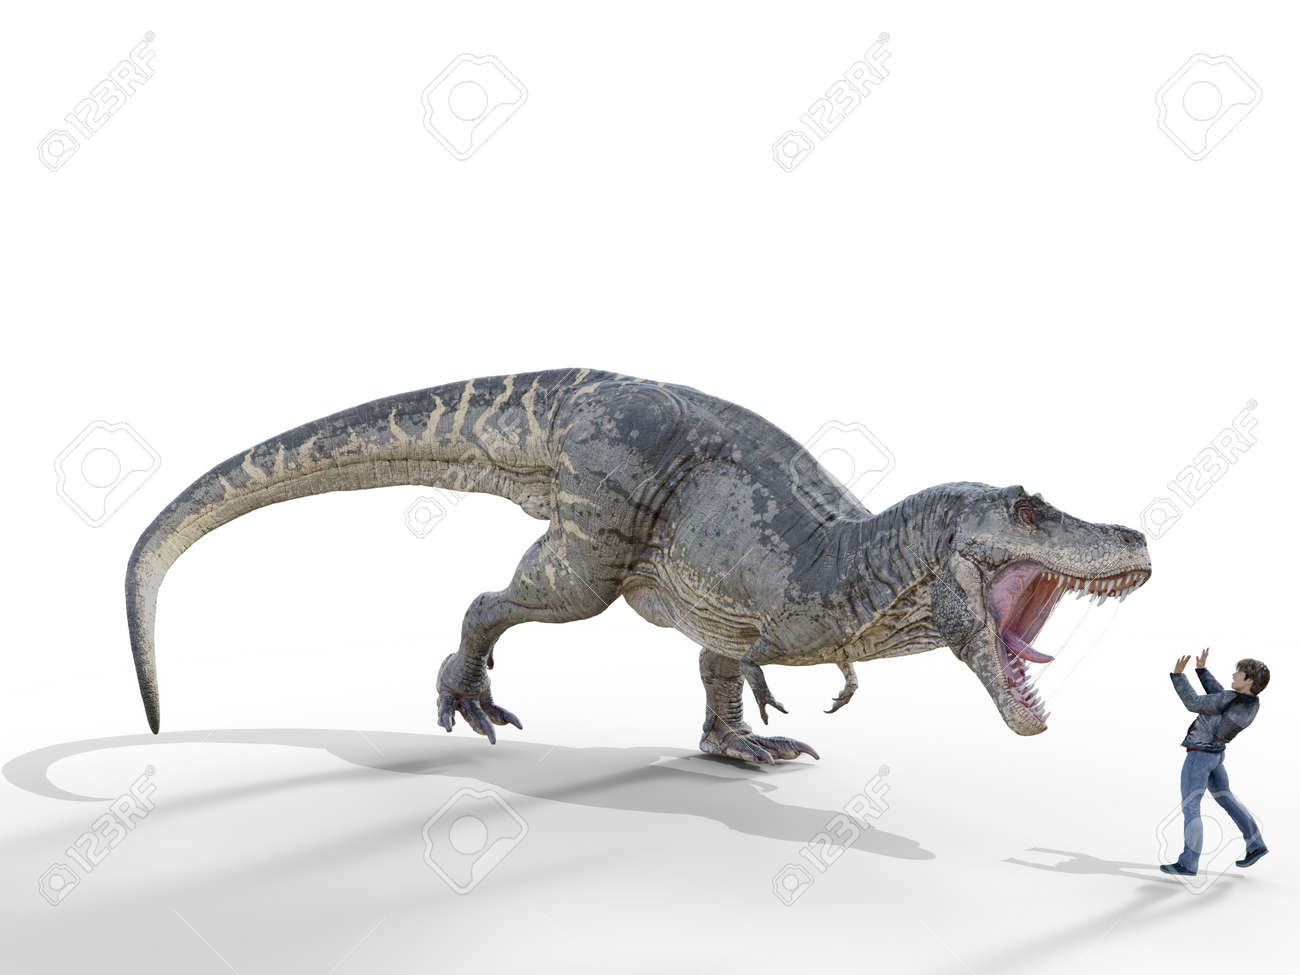 dionsaur attacks human on white background - 3d rendering - 162166051